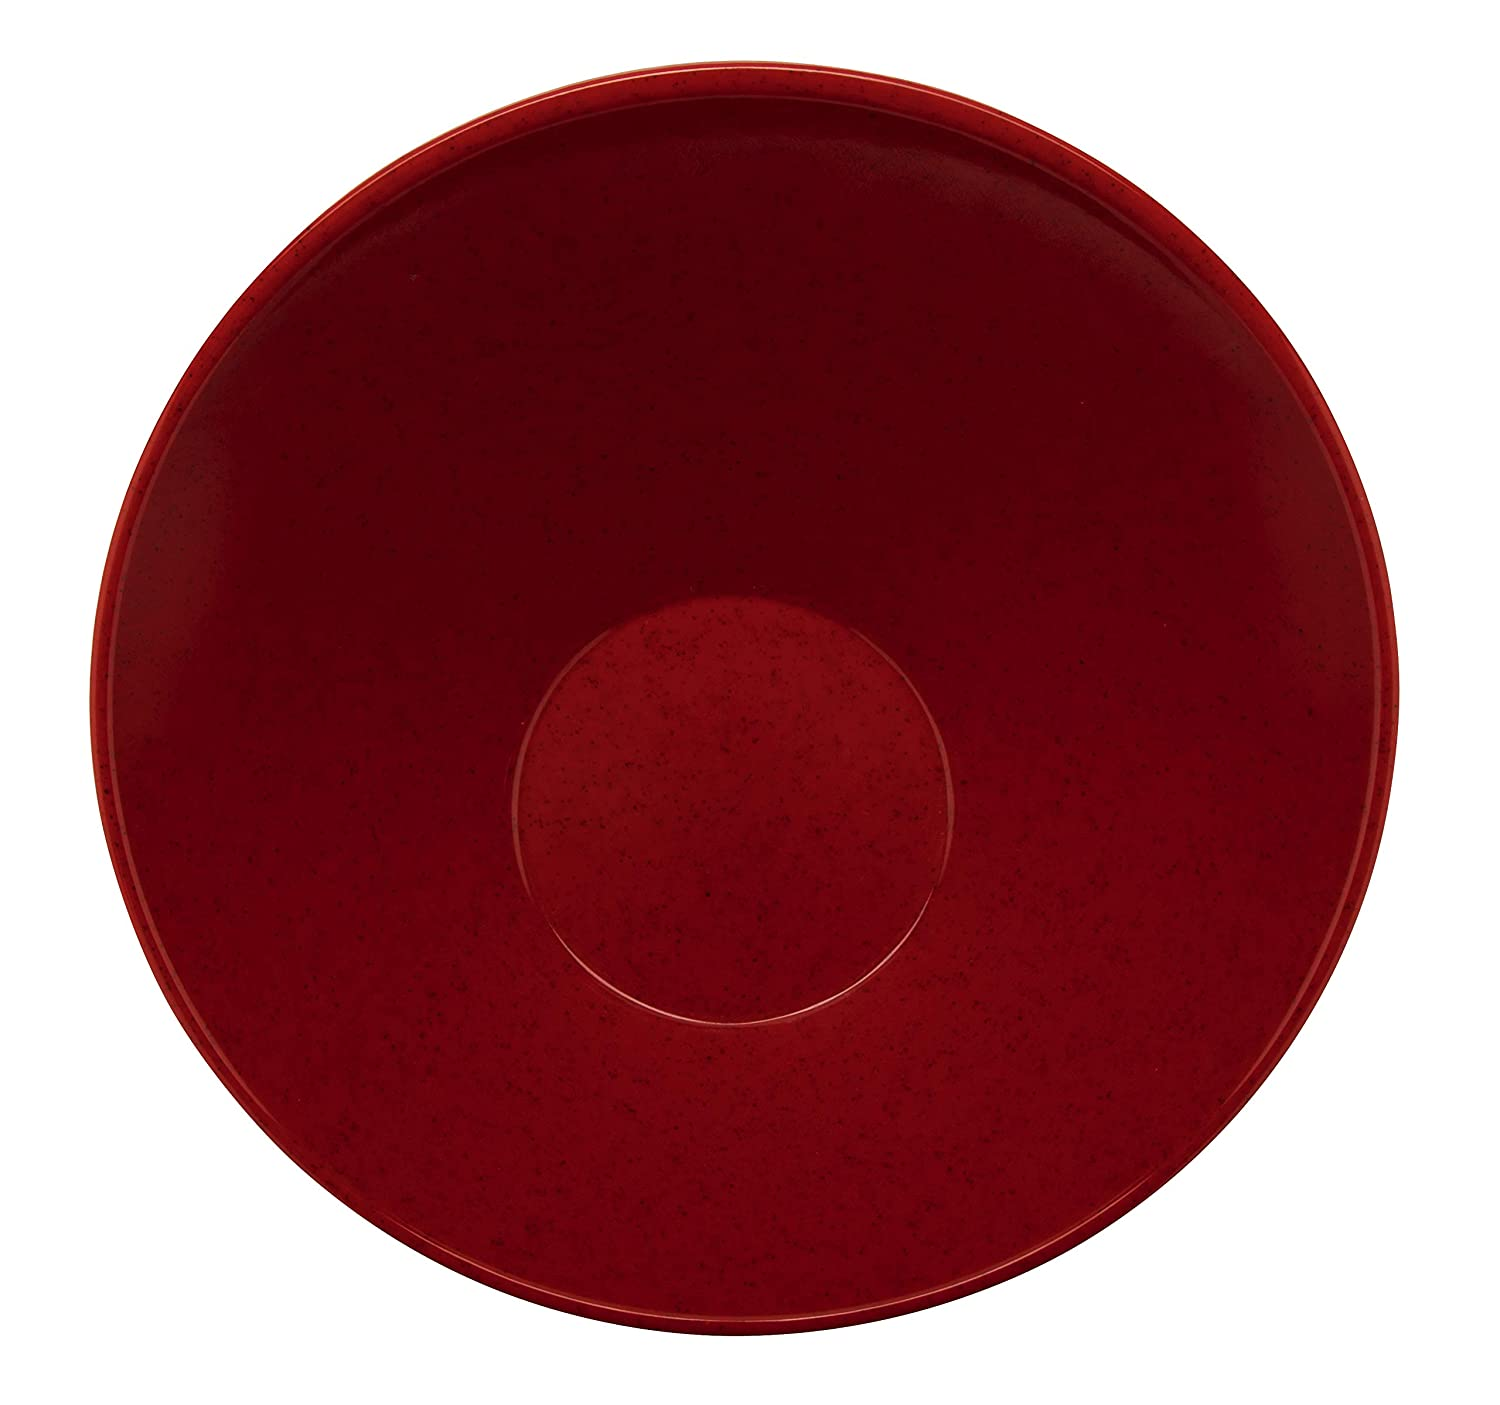 Red GET B-792-RSP Angled Salad Bowl 24 Ounce